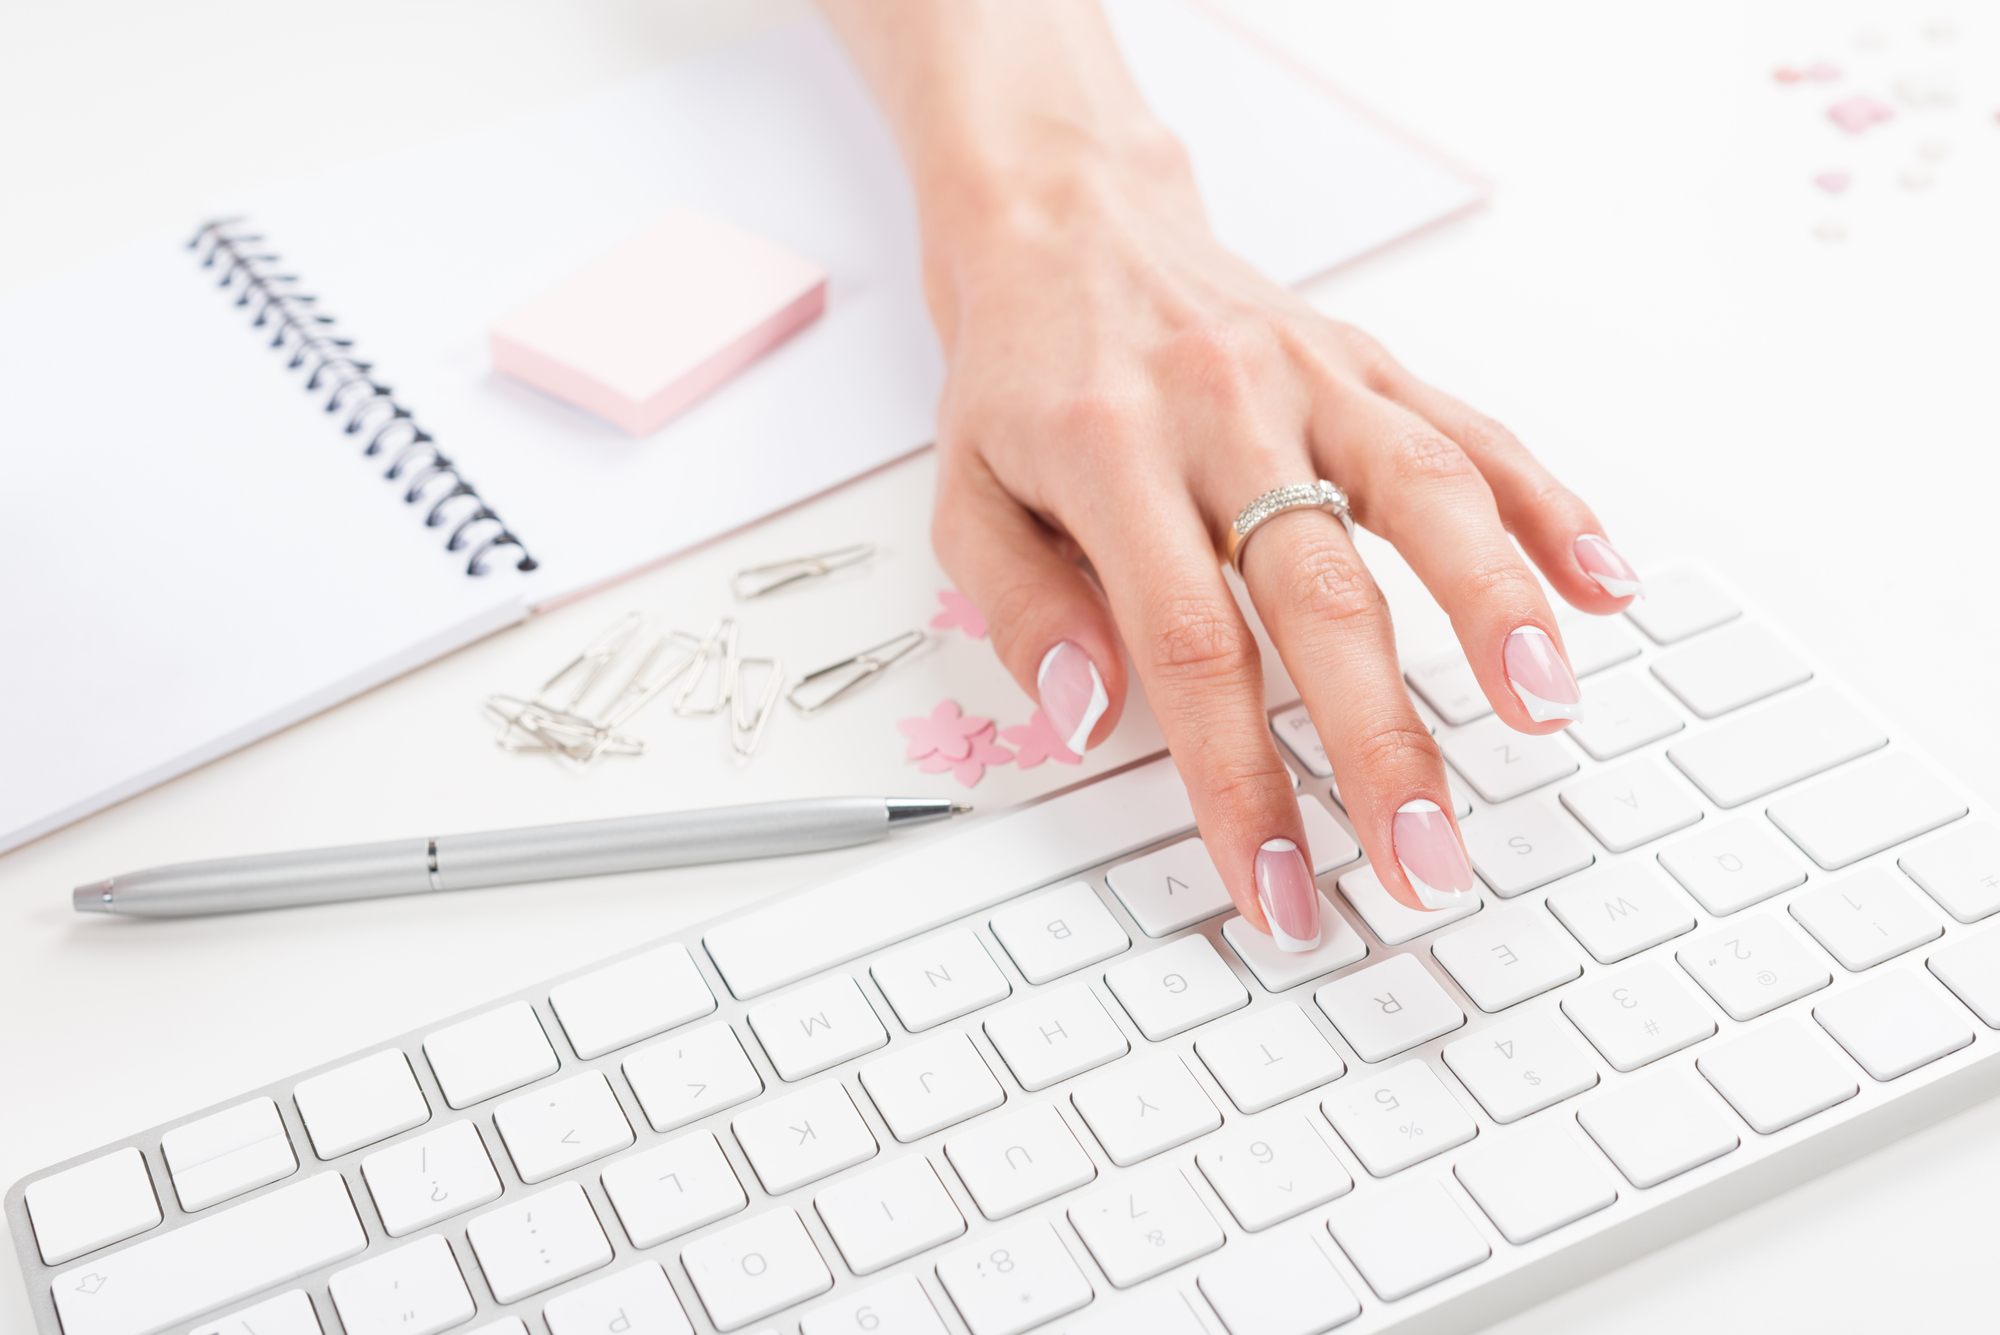 Email marketing copywriter and strategist typing on a keyboard.